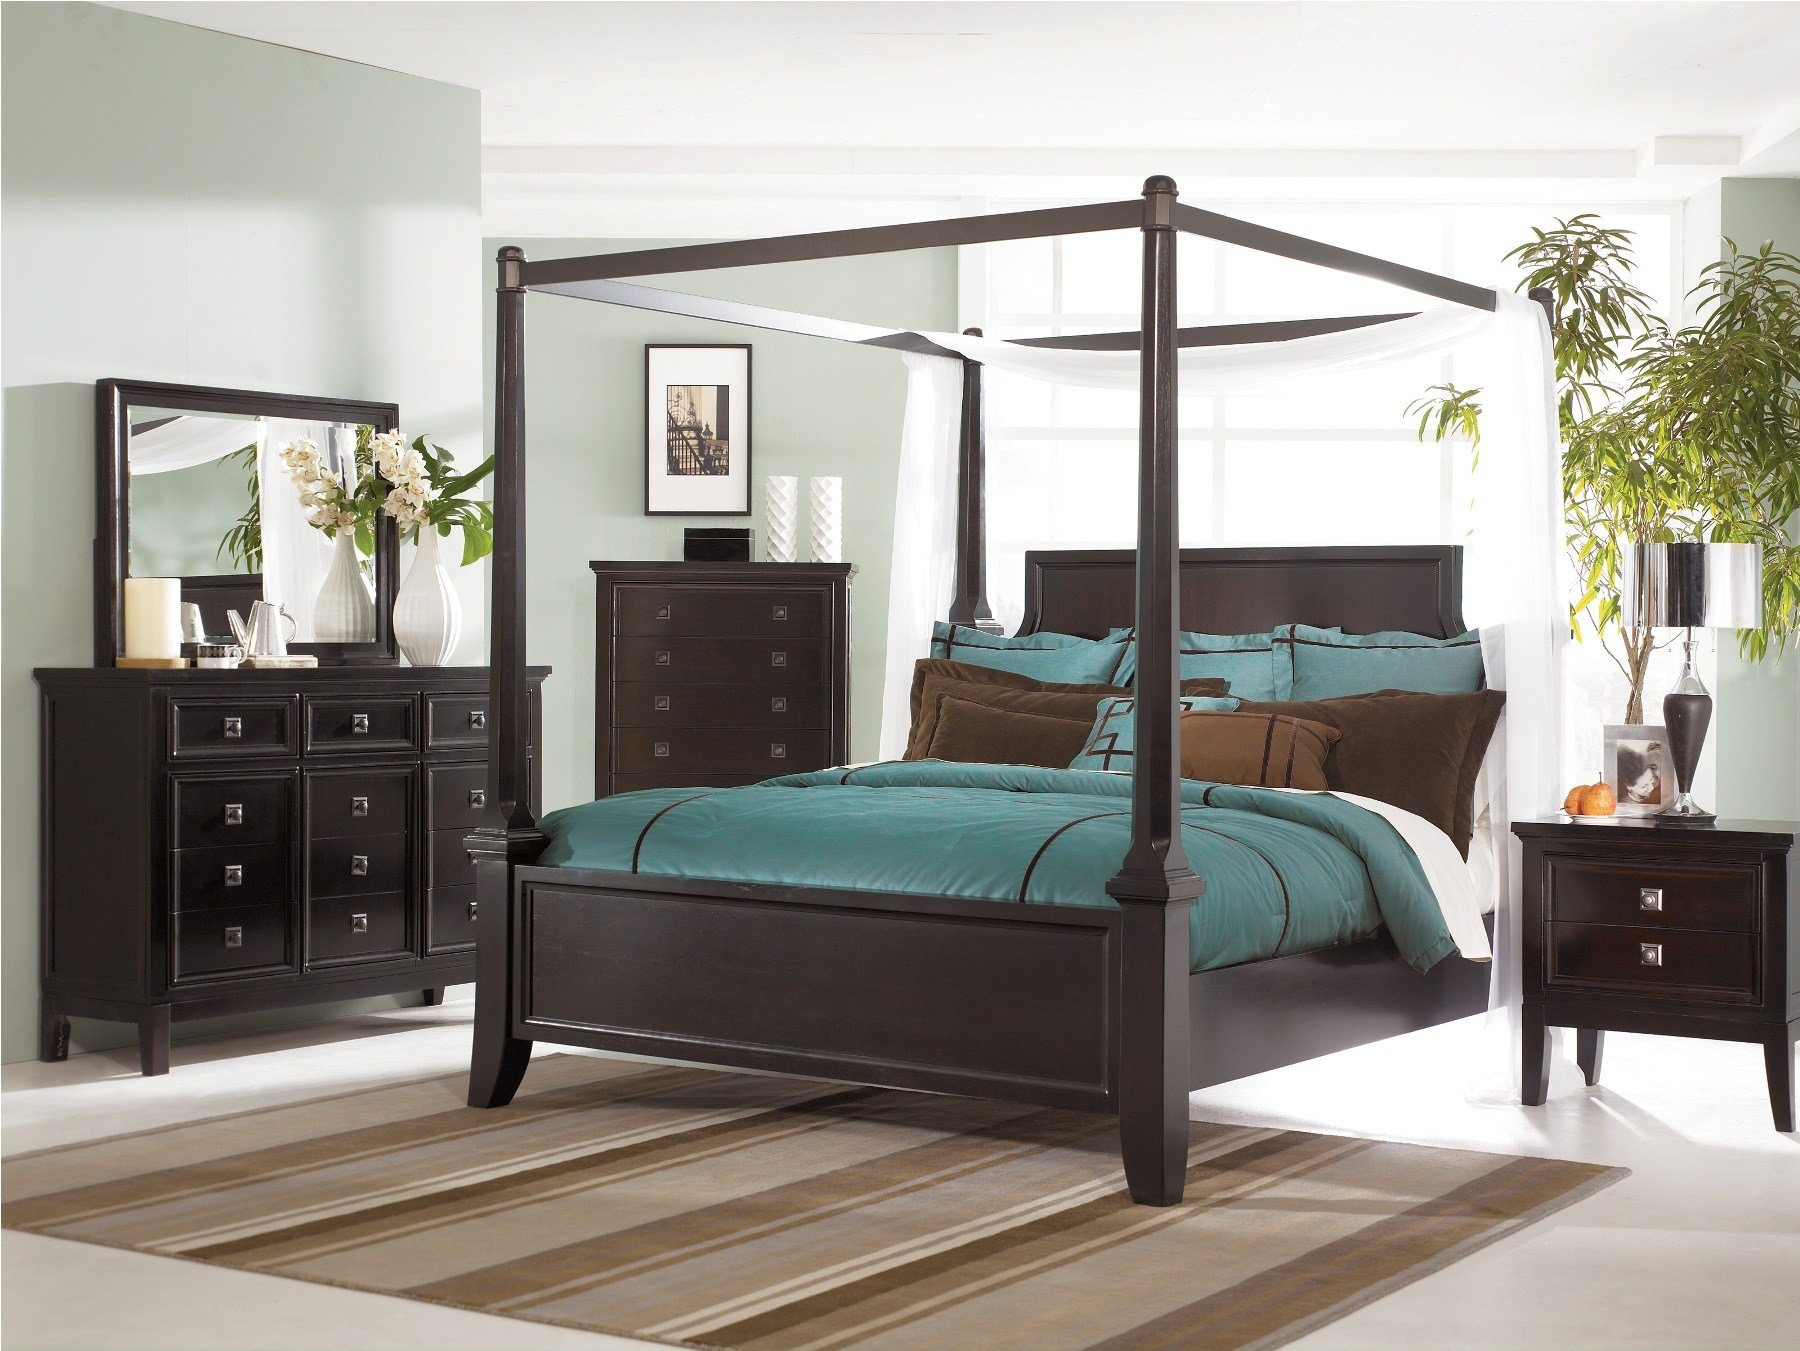 Best Selling Bedroom Set Of Partex Furniture Infozone24 With Pictures